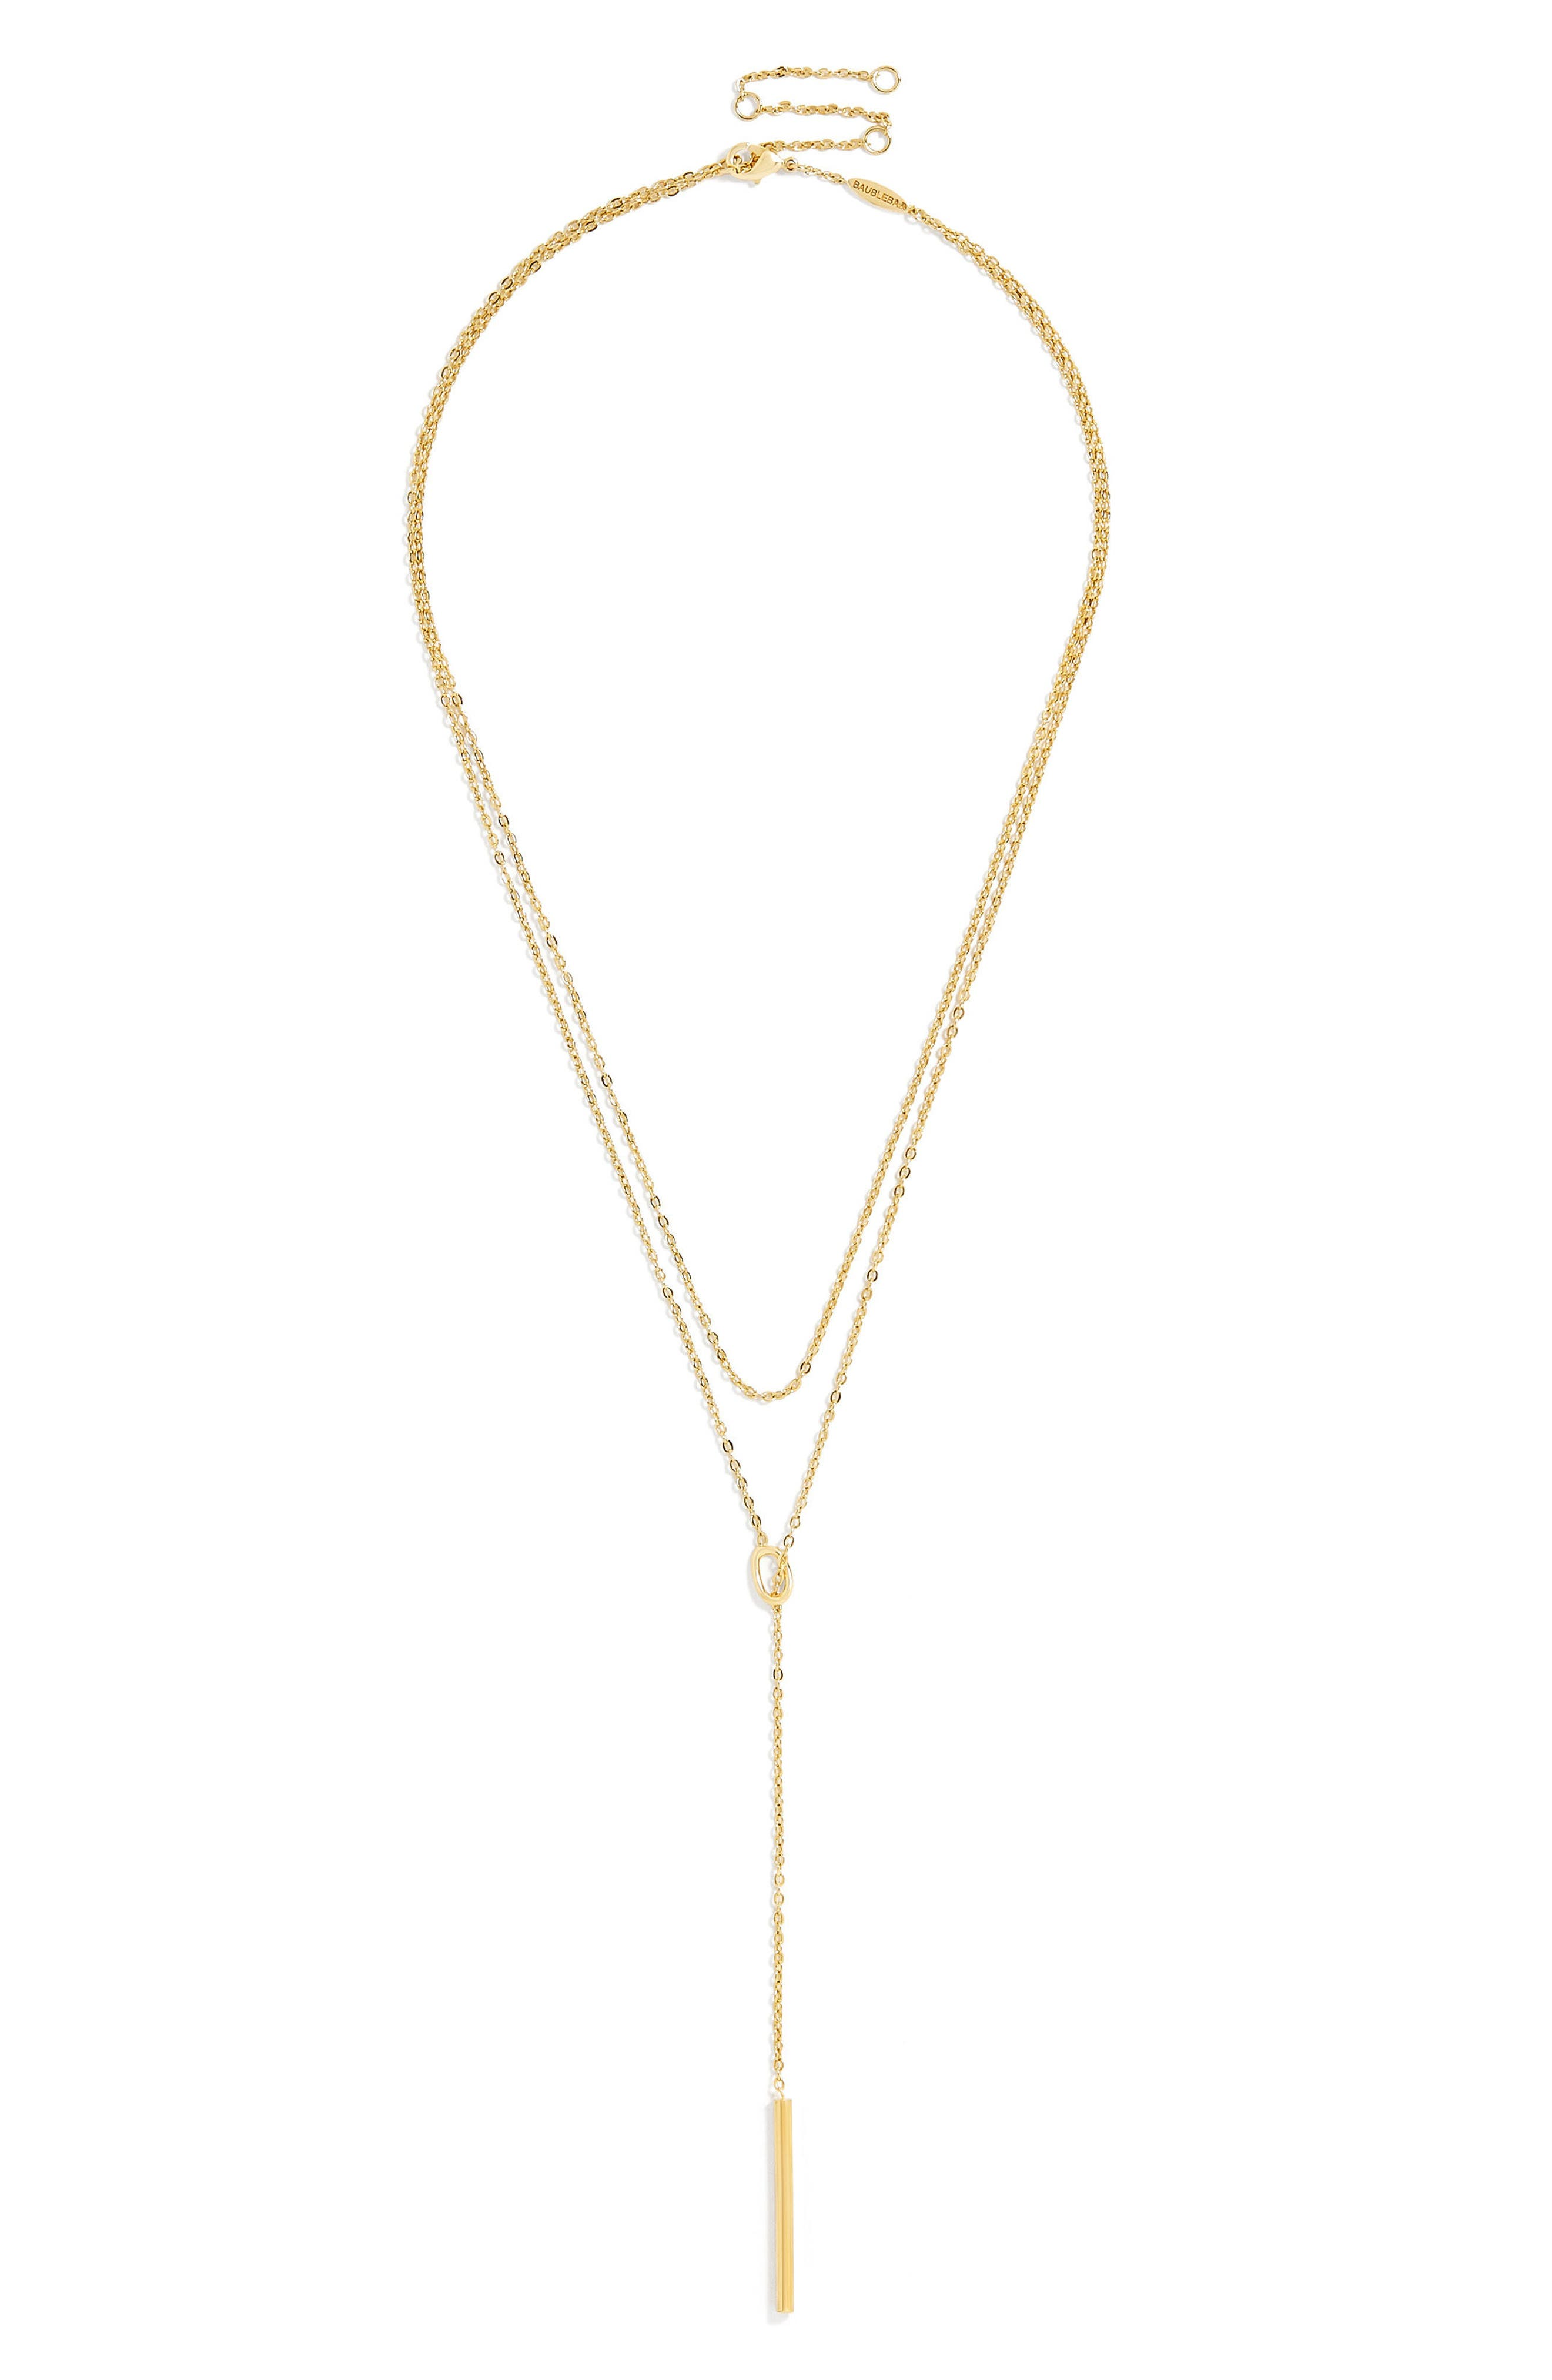 Isabella Everyday Fine Layered Necklace,                         Main,                         color, Gold